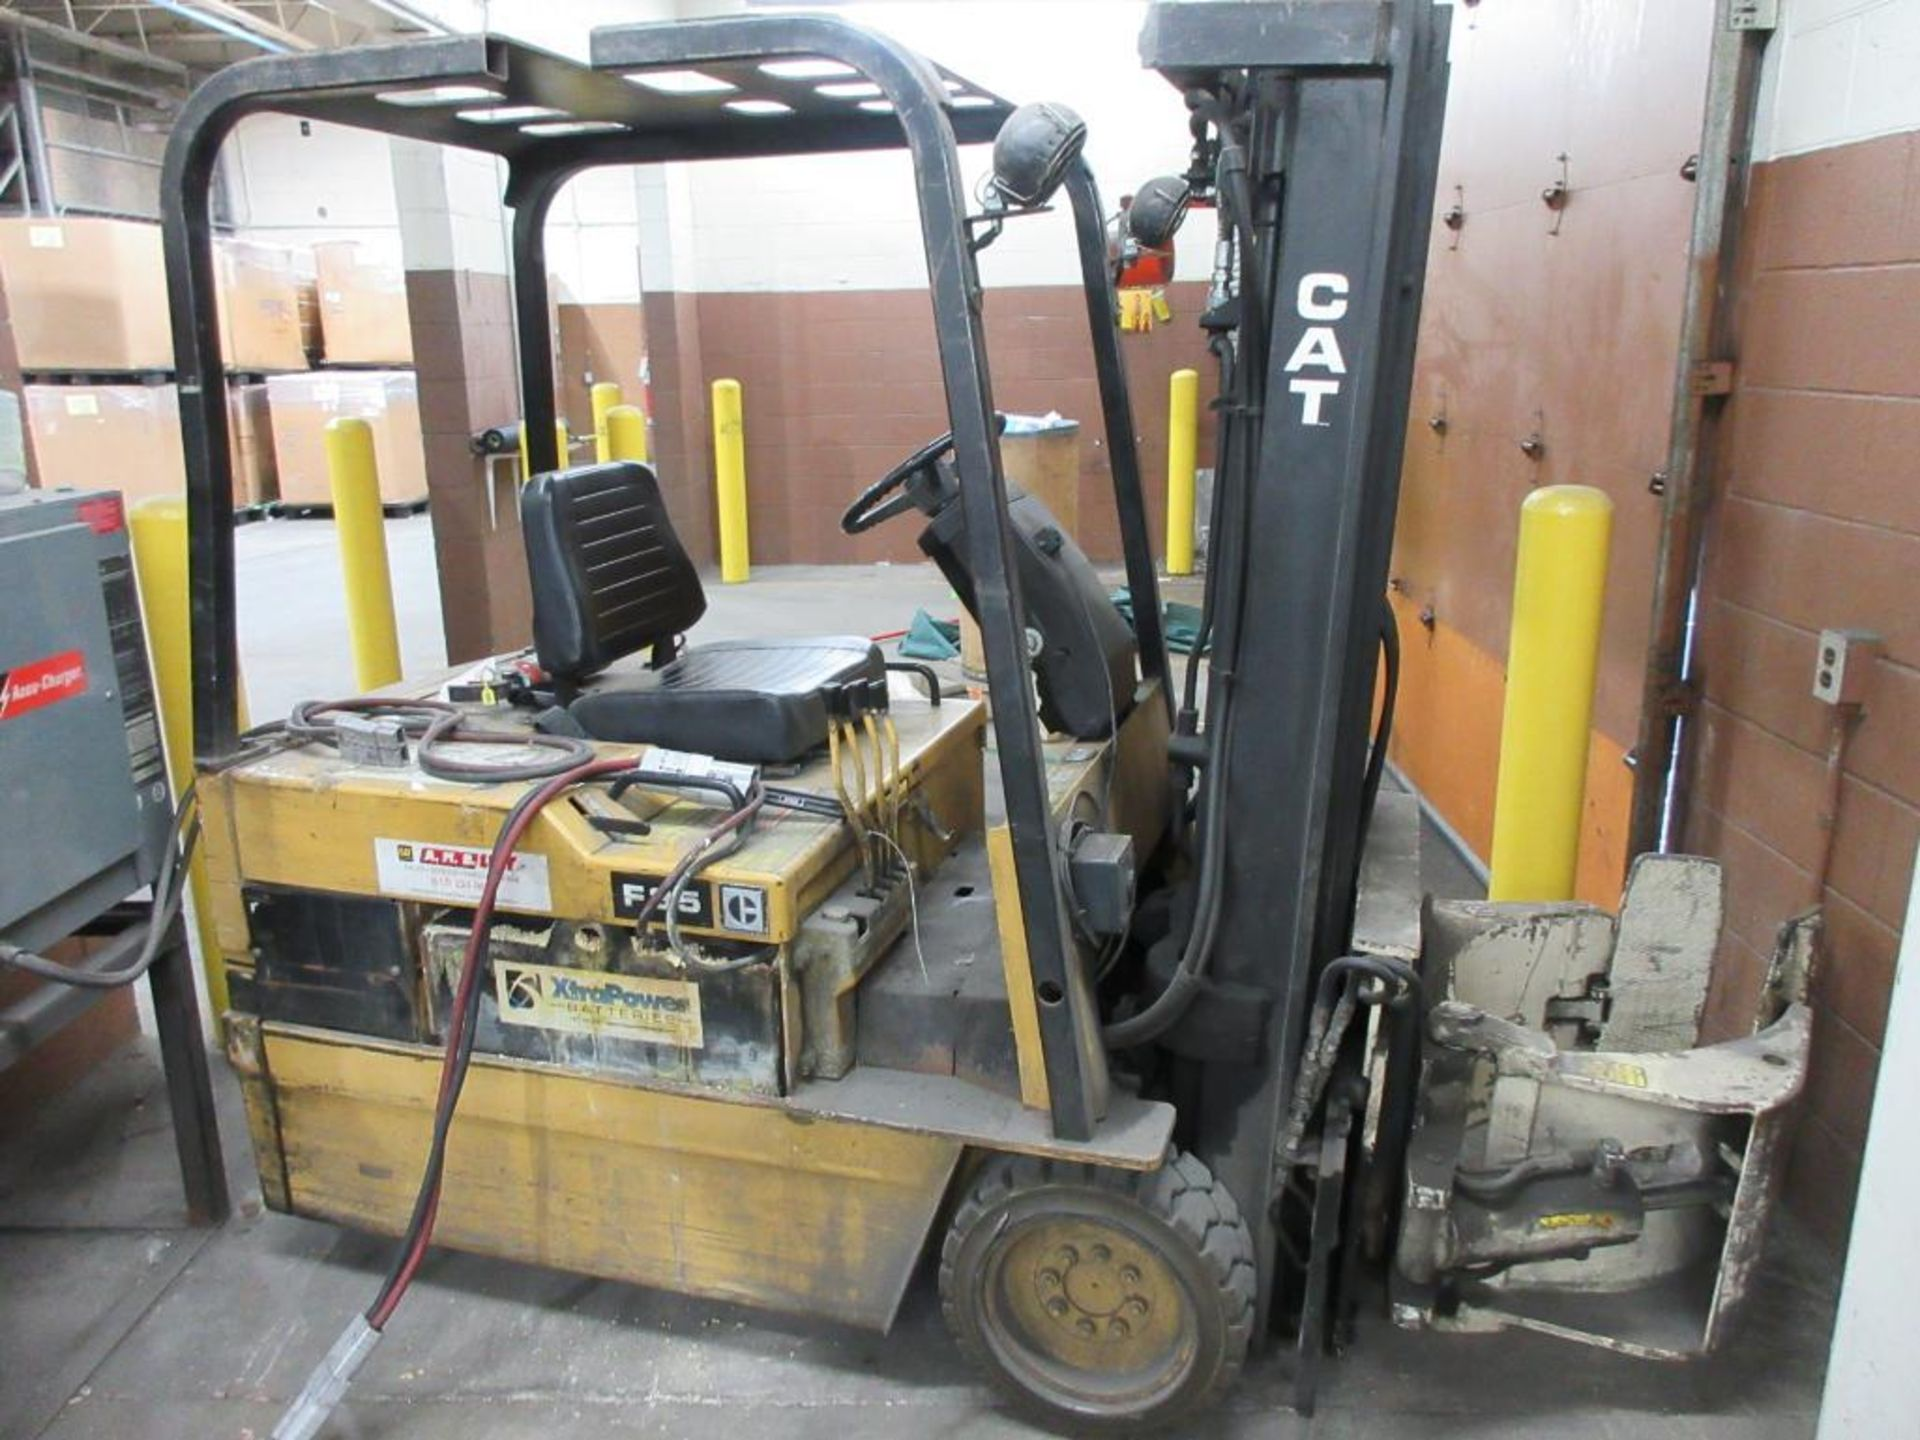 """Caterpillar 3,250 lb capacity, 3 wheel electric clamp forklift, model F35, 3 stage mast, 191"""" lift h - Image 4 of 10"""